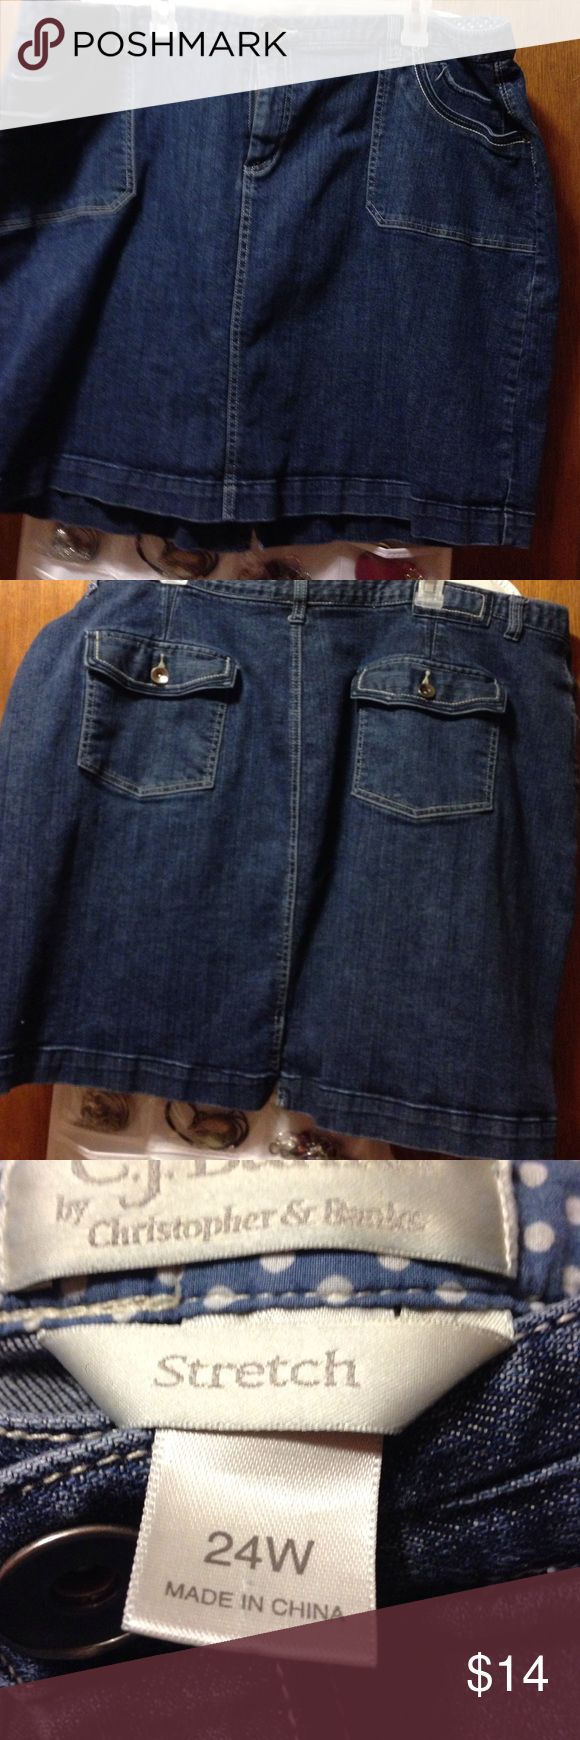 24W Jean mini skirt Excellent condition comfy cotton mini skirt. Very comfy machine washable. CJ Banks Skirts Mini